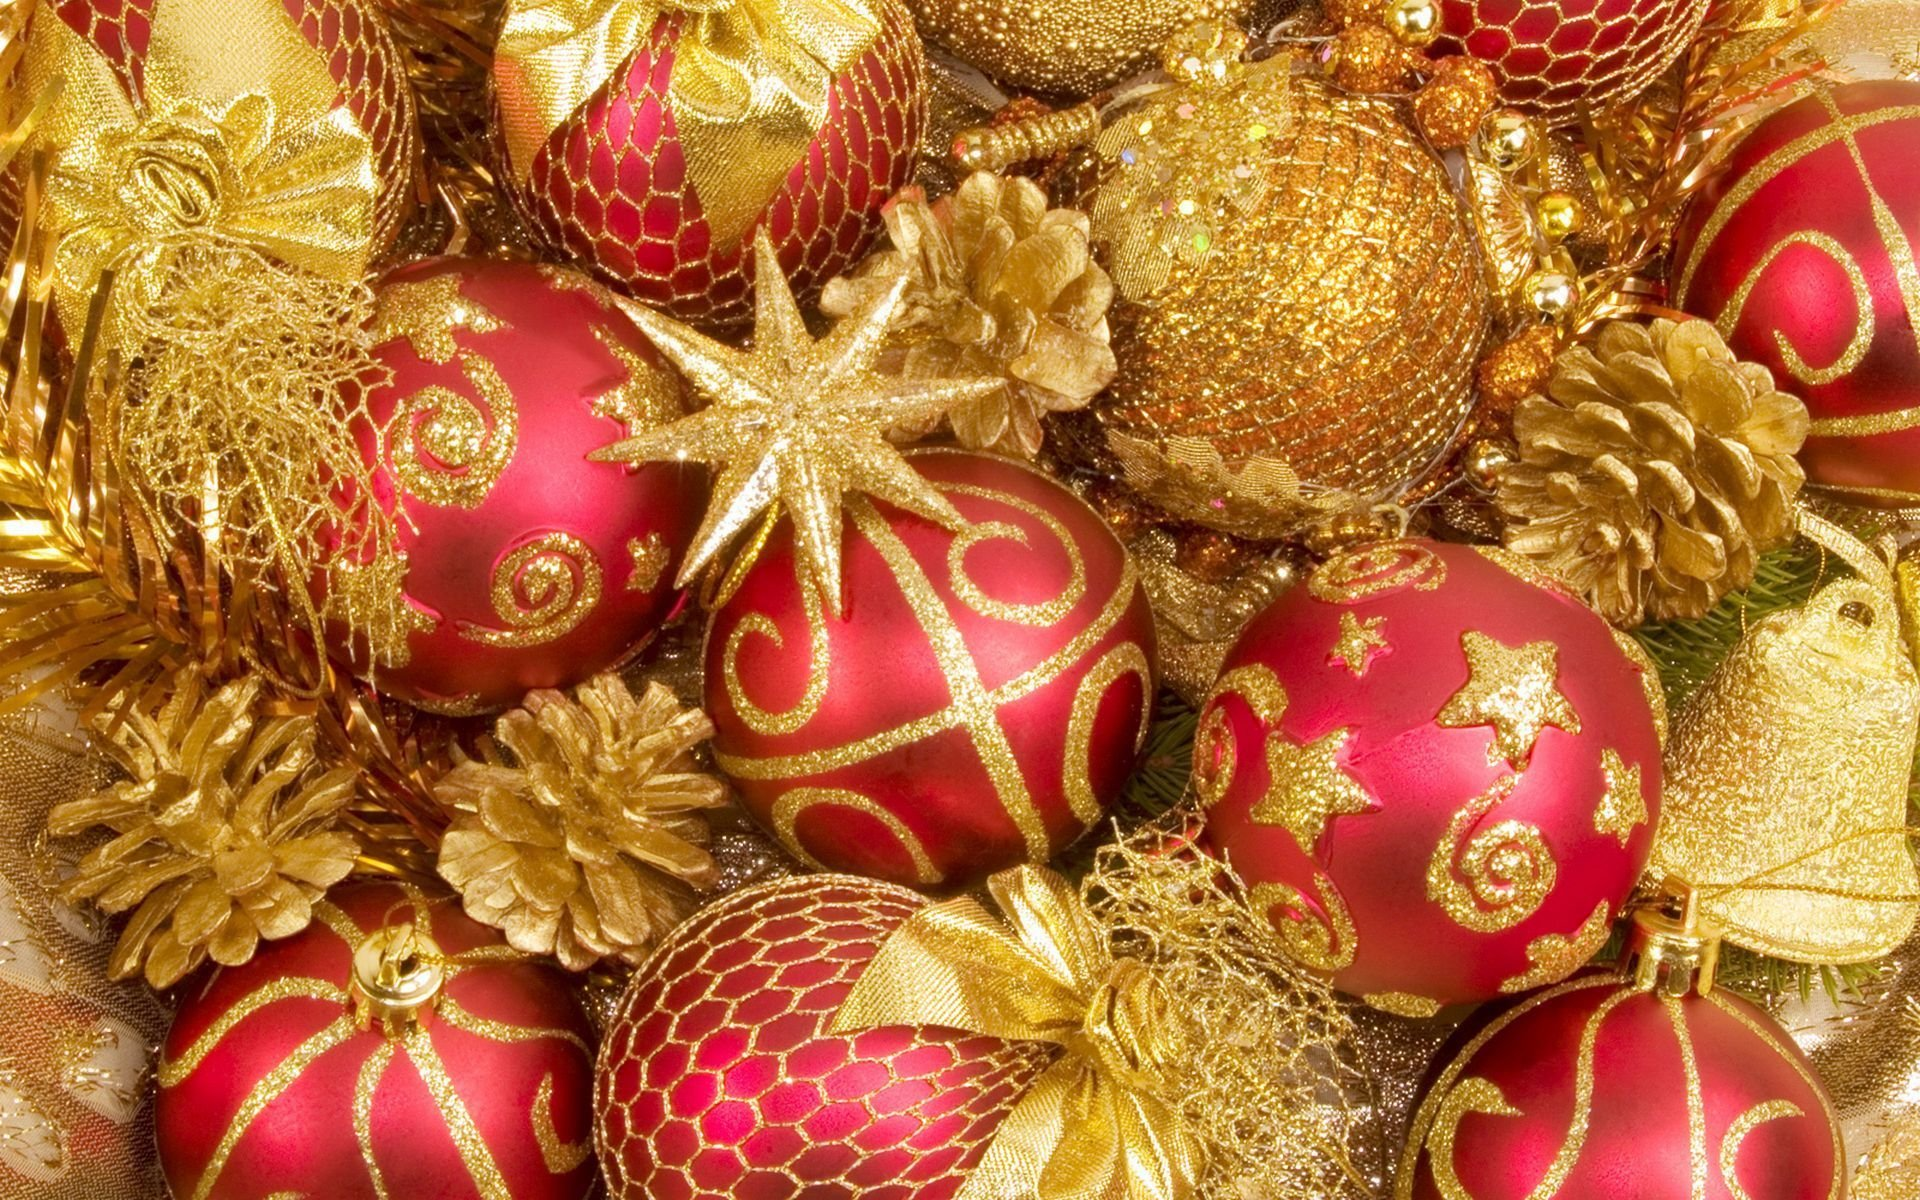 Ornaments and Decorations in Red and Gold HD Wallpaper ...